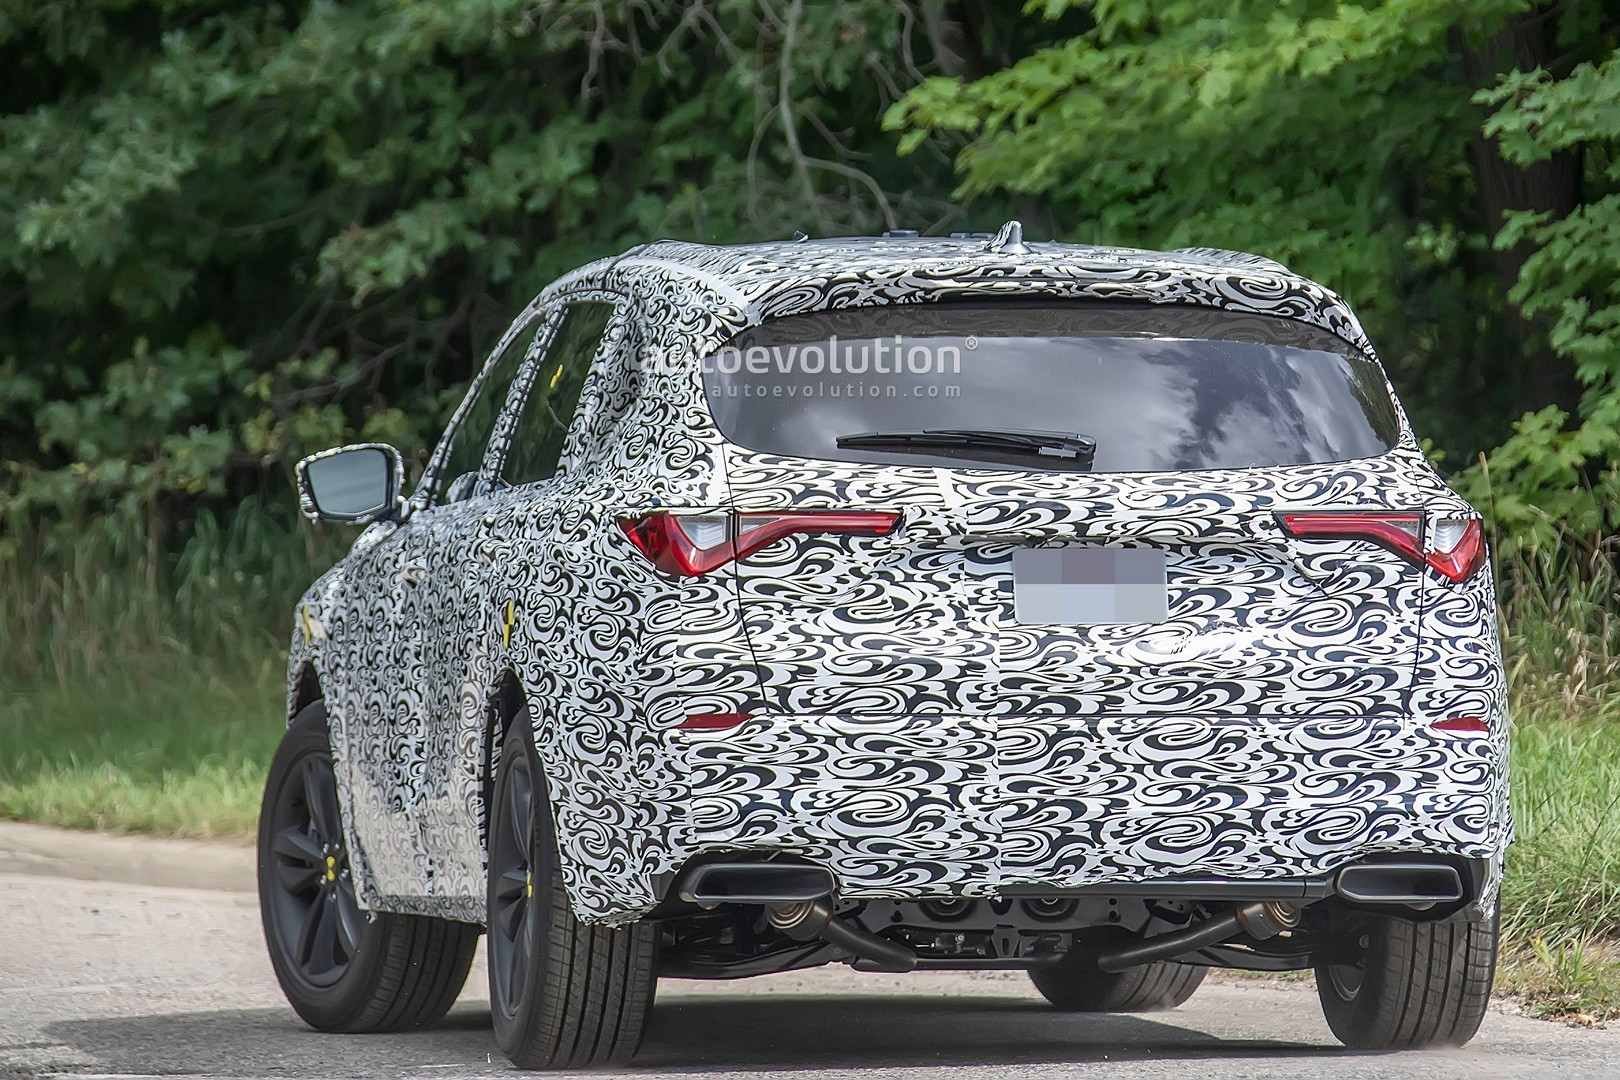 2021 acura mdx shows sharp styling in latest spyshots